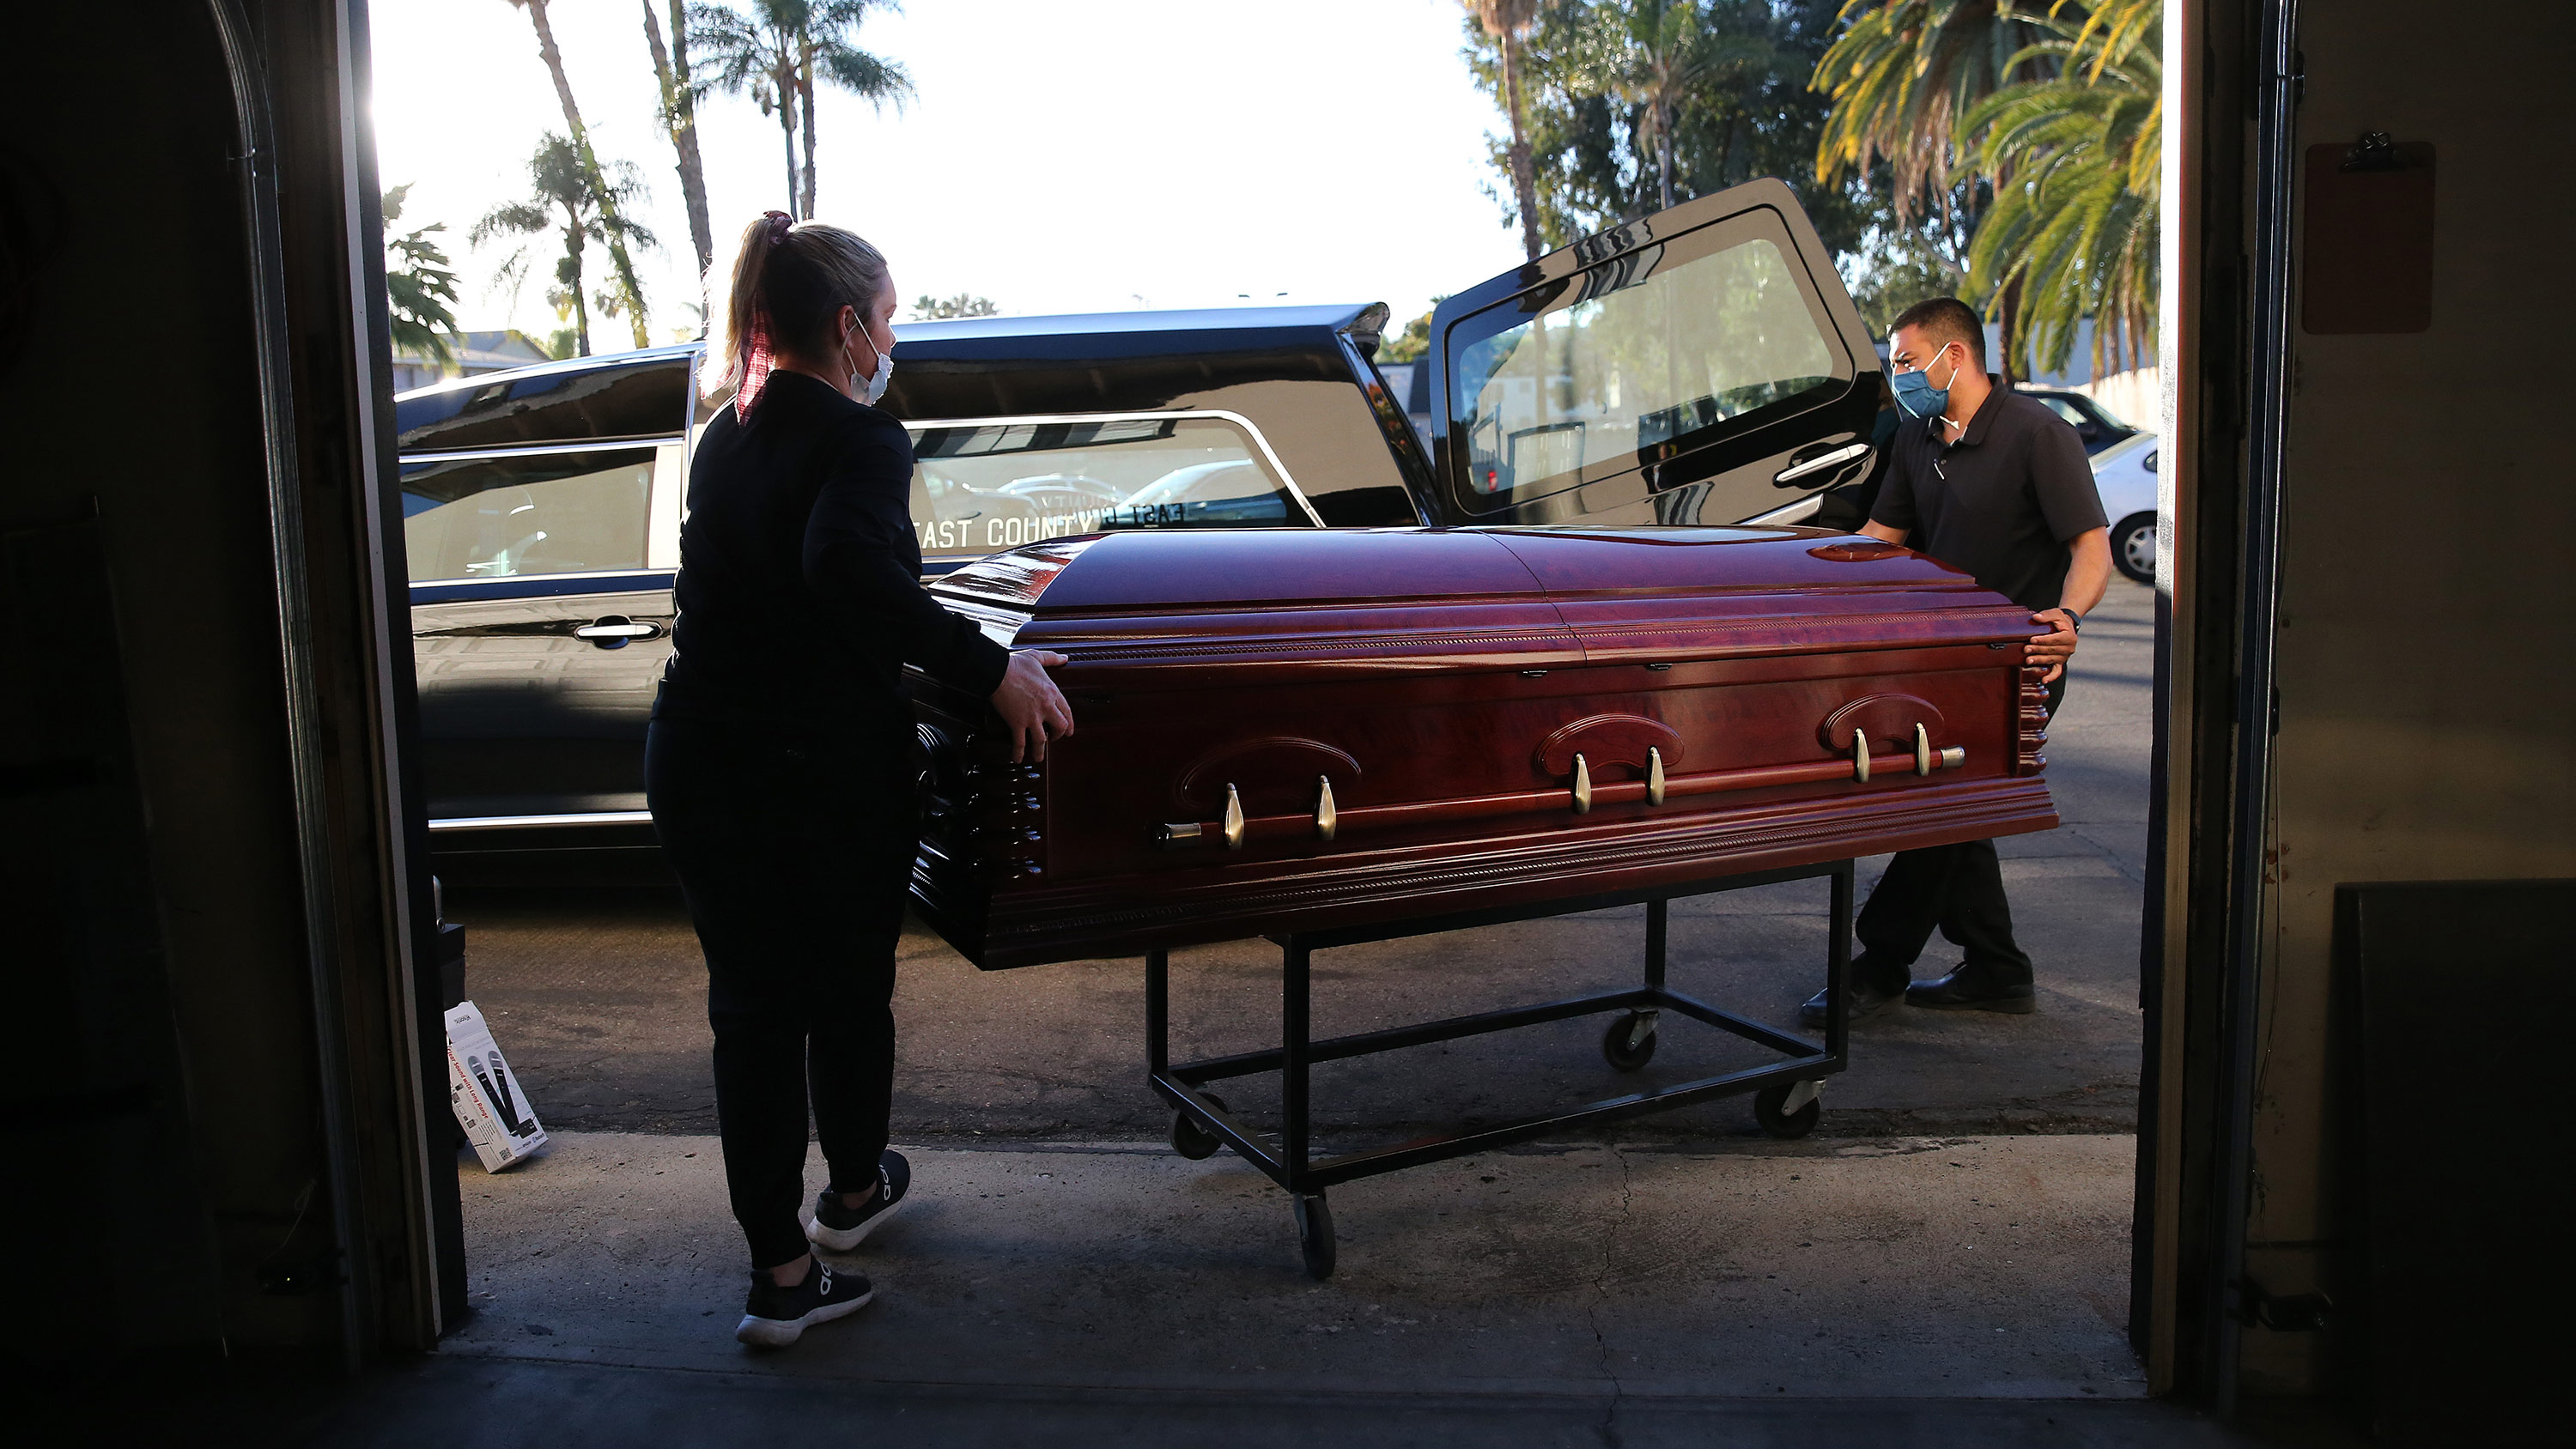 Funeral workers load the casket of a Covid-19 victim into a hearse at East County Mortuary on January 15, in El Cajon, California.